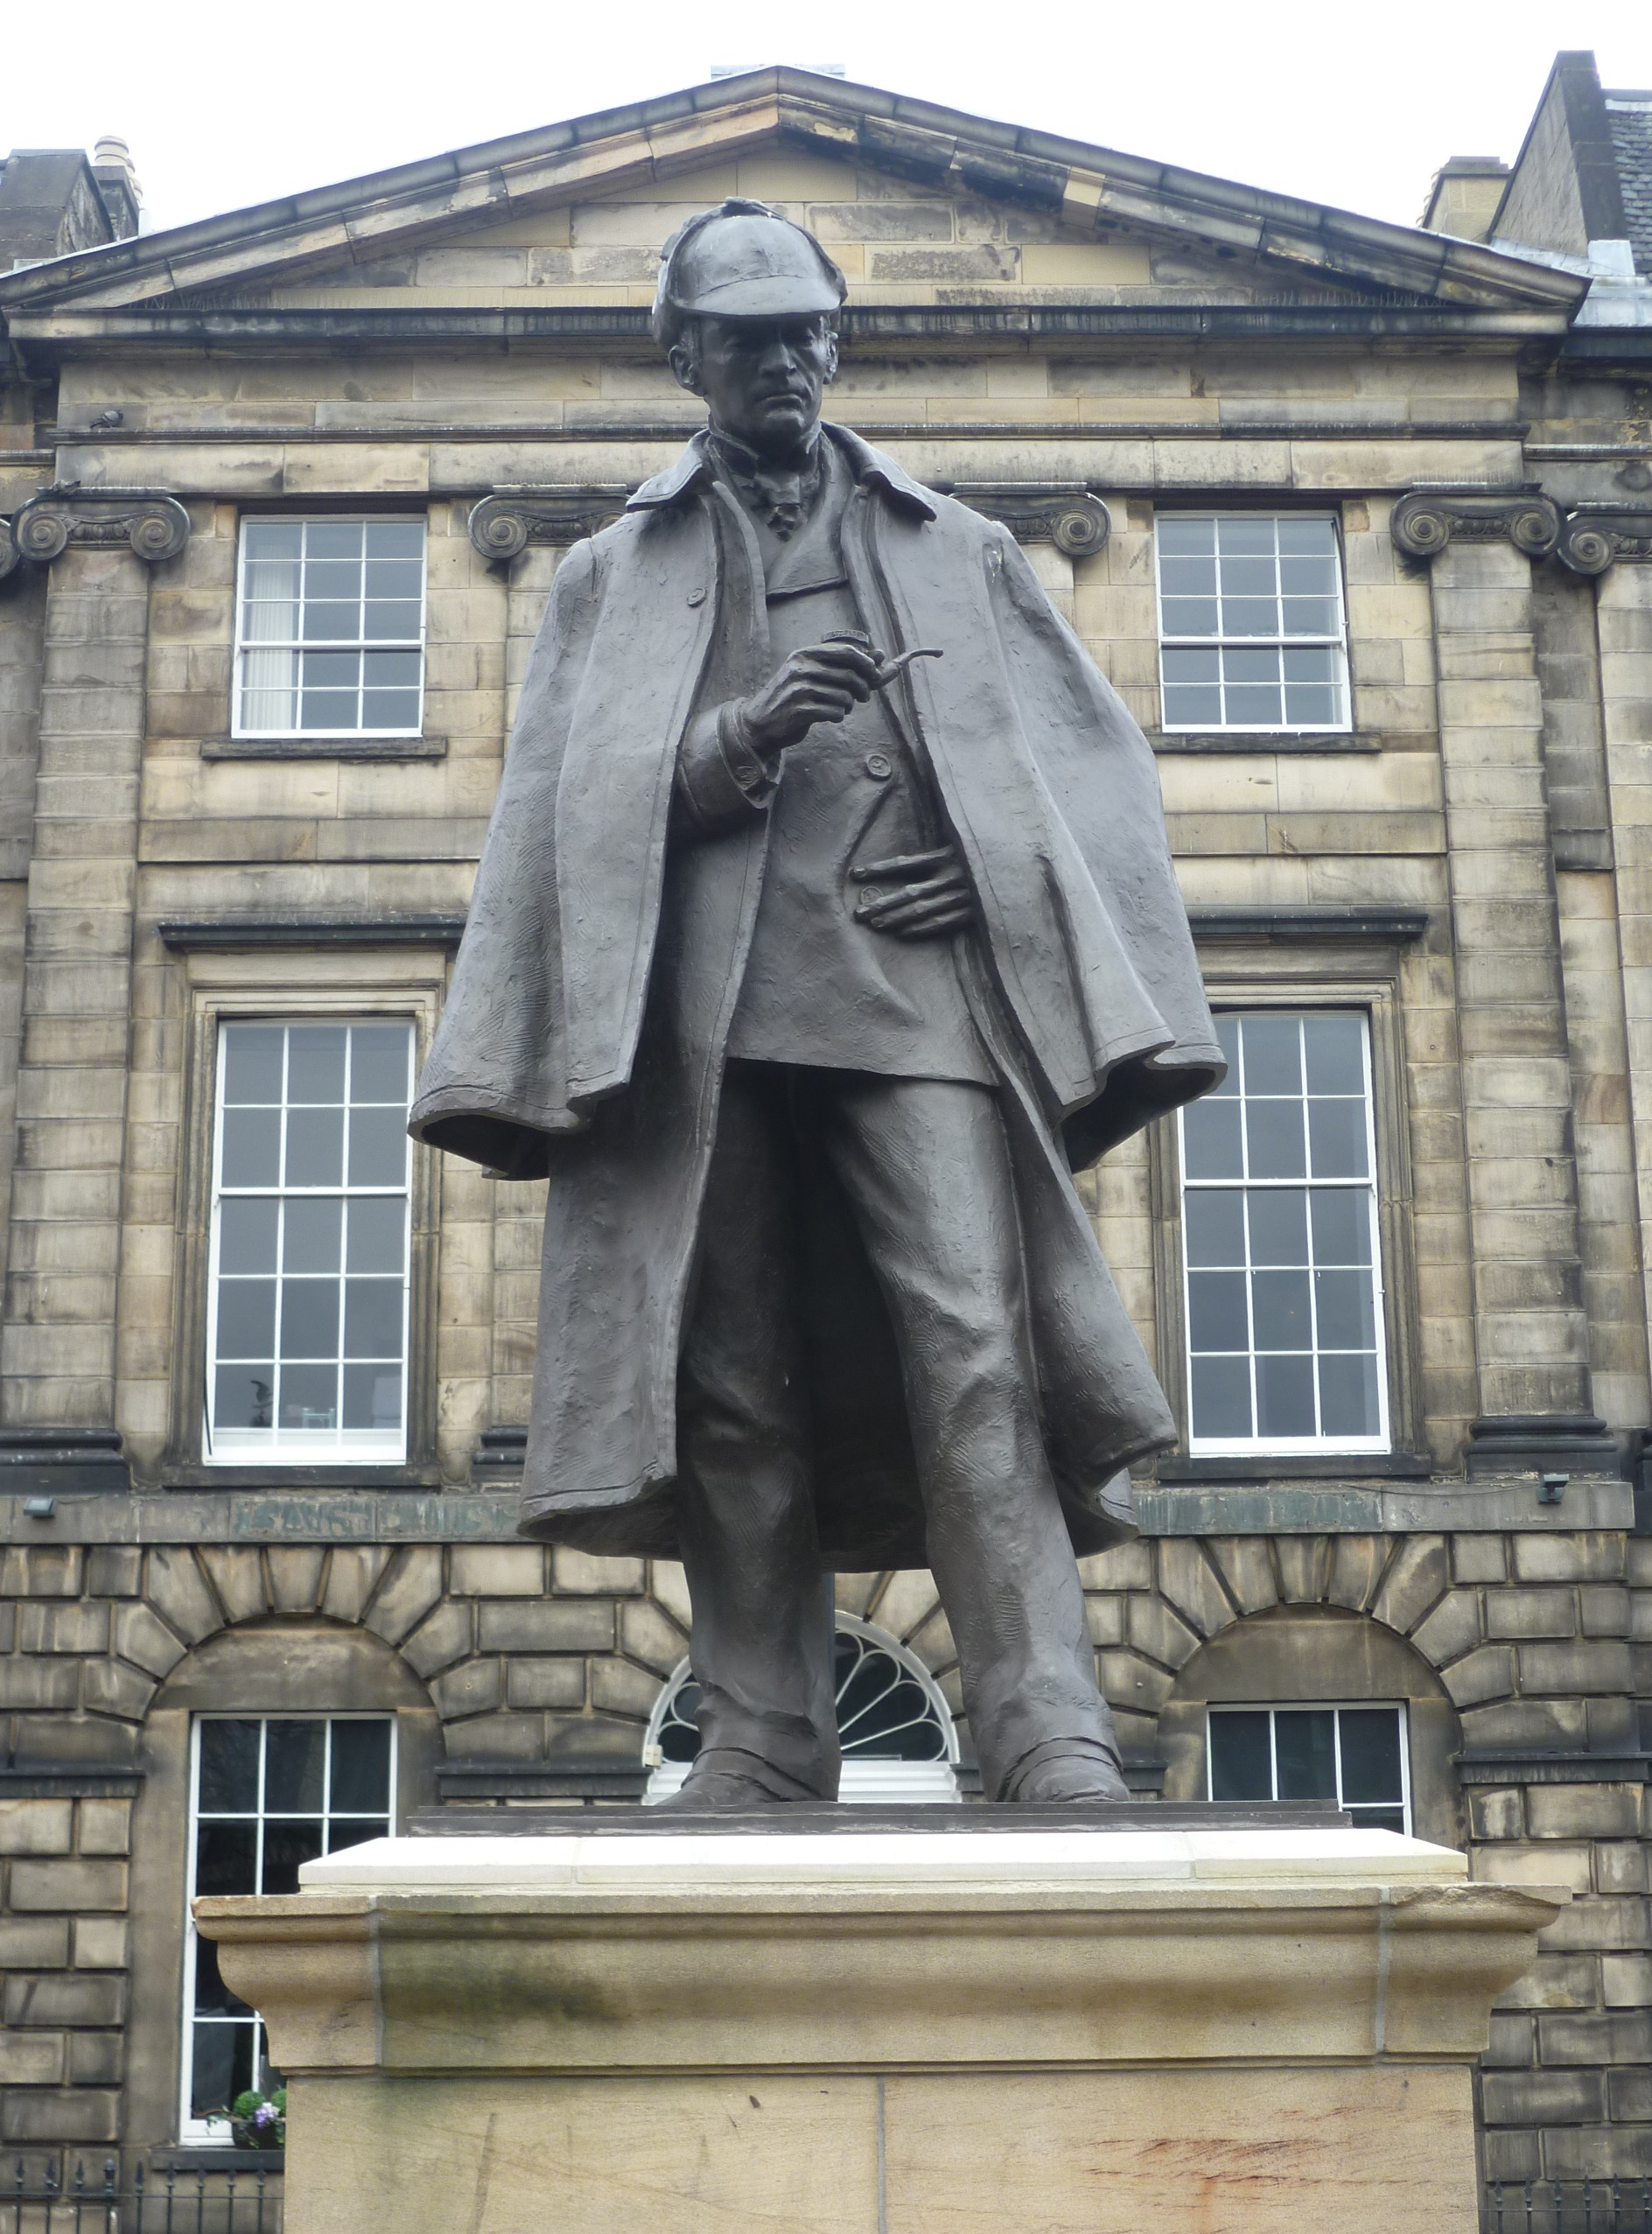 Sherlock Holmes statue in Edinburgh, erected opposite the birthplace of Doyle, which was demolished c. 1970